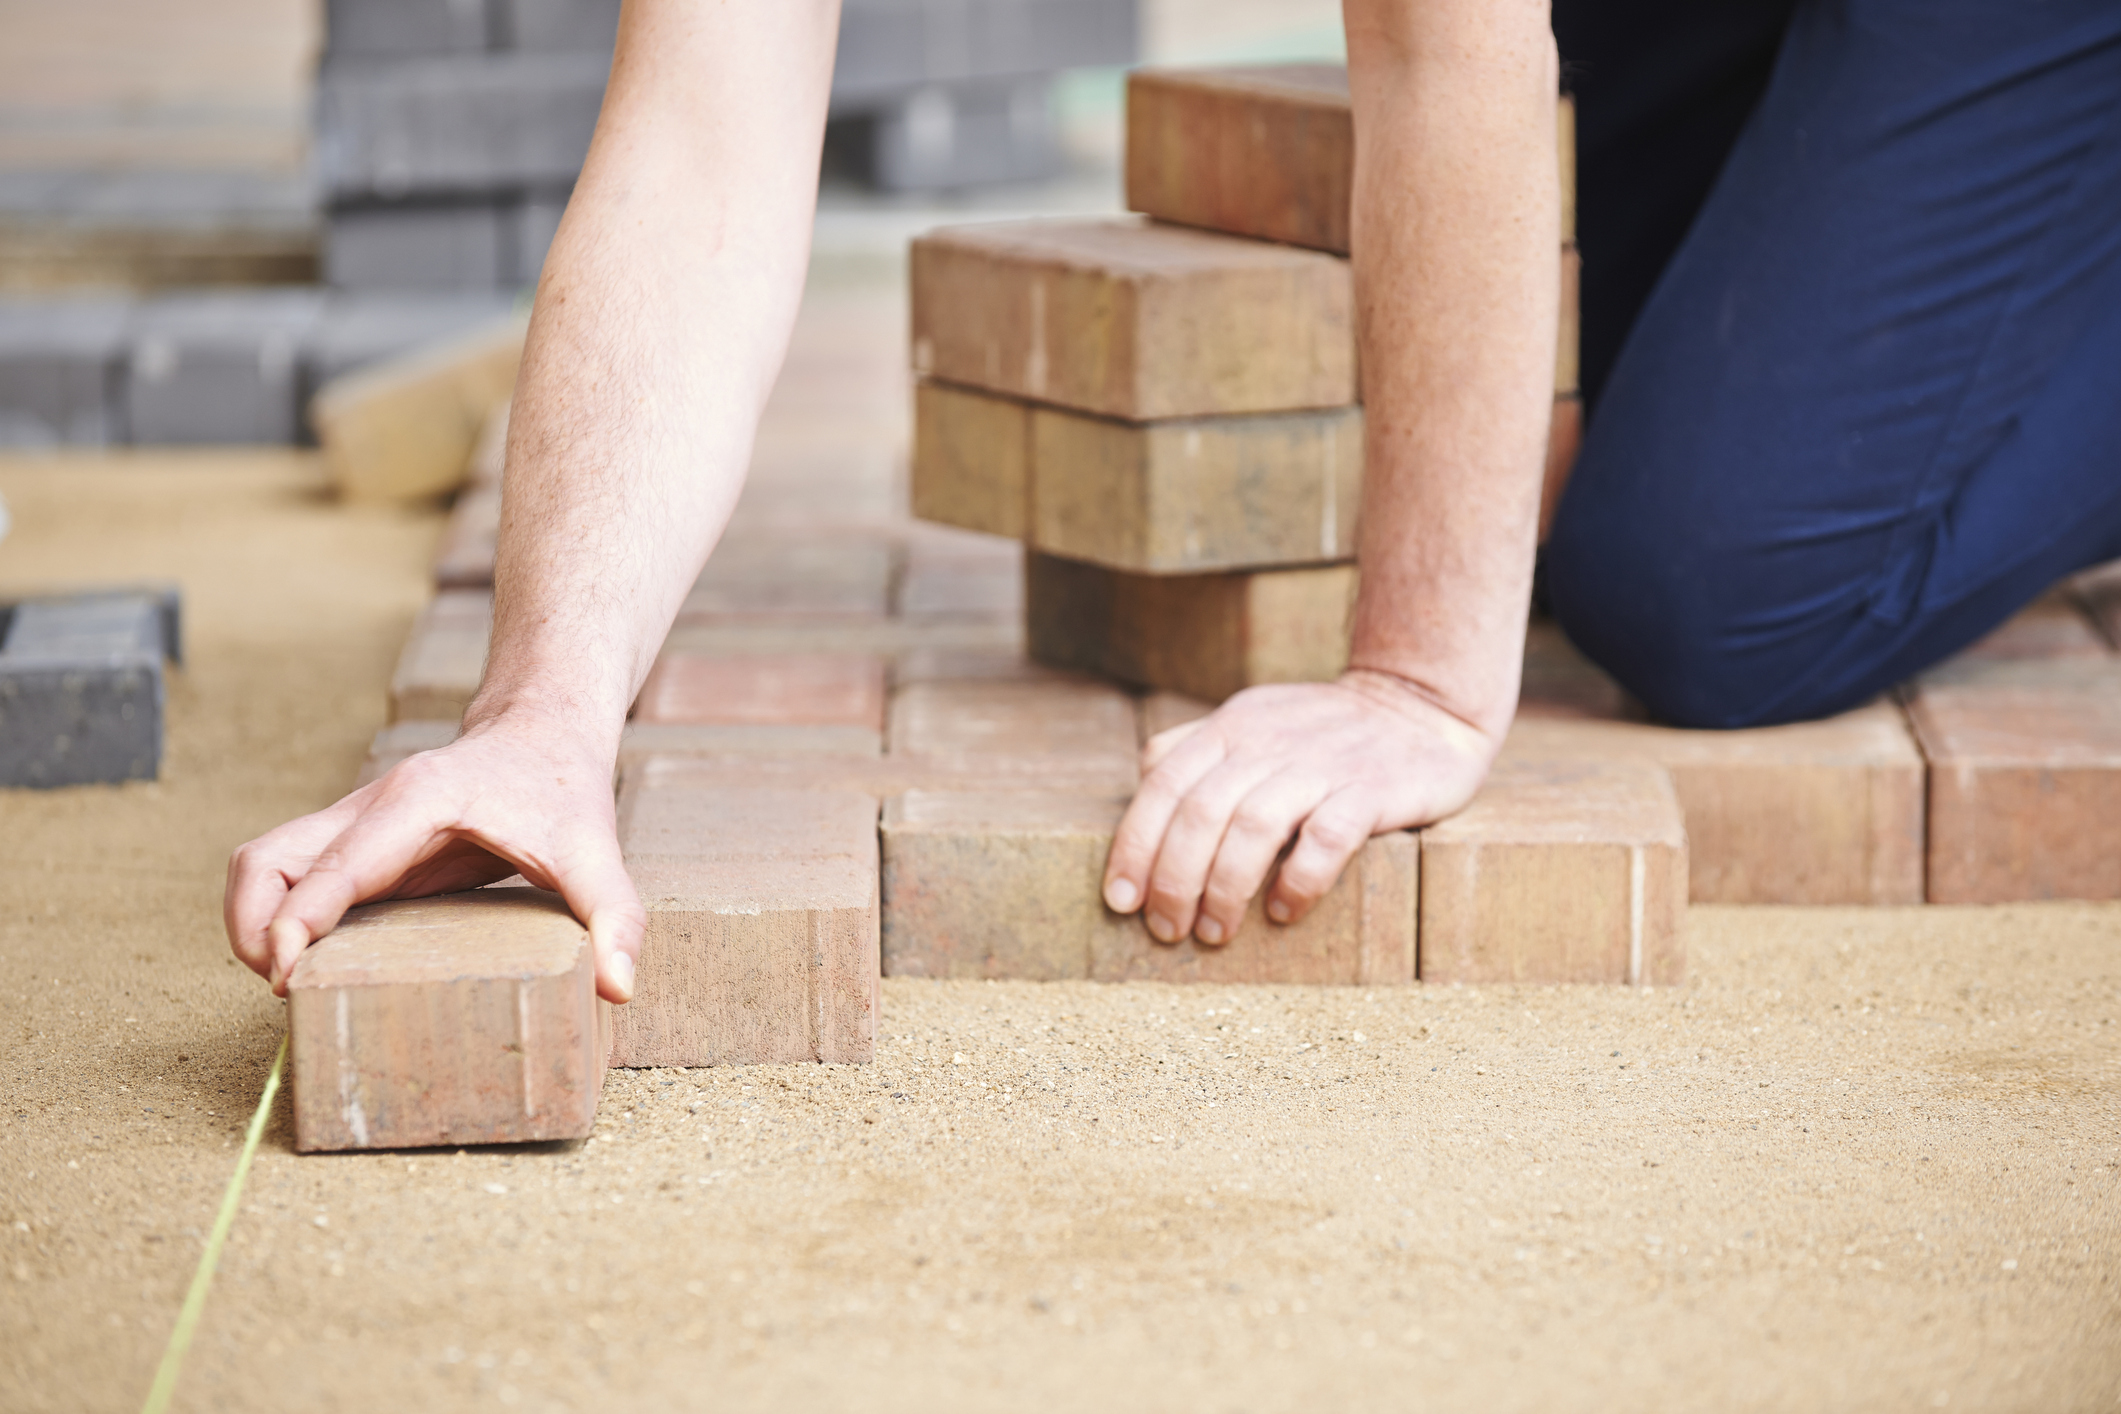 Is Installing Patio Pavers a Good DIY Project?